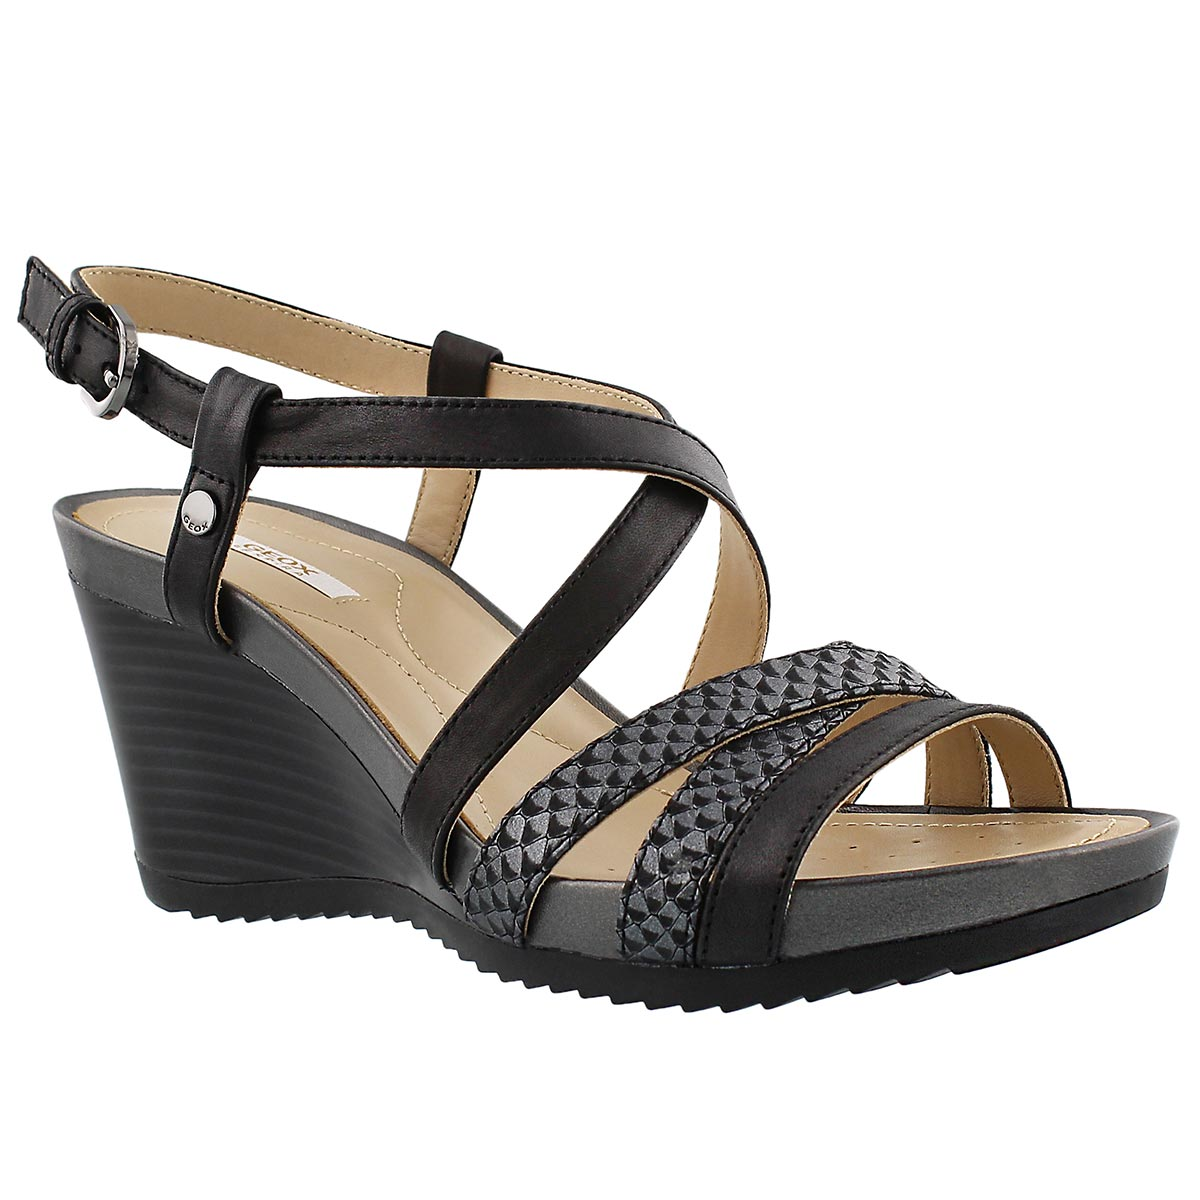 Women's NEW RORIE black wedge sandals